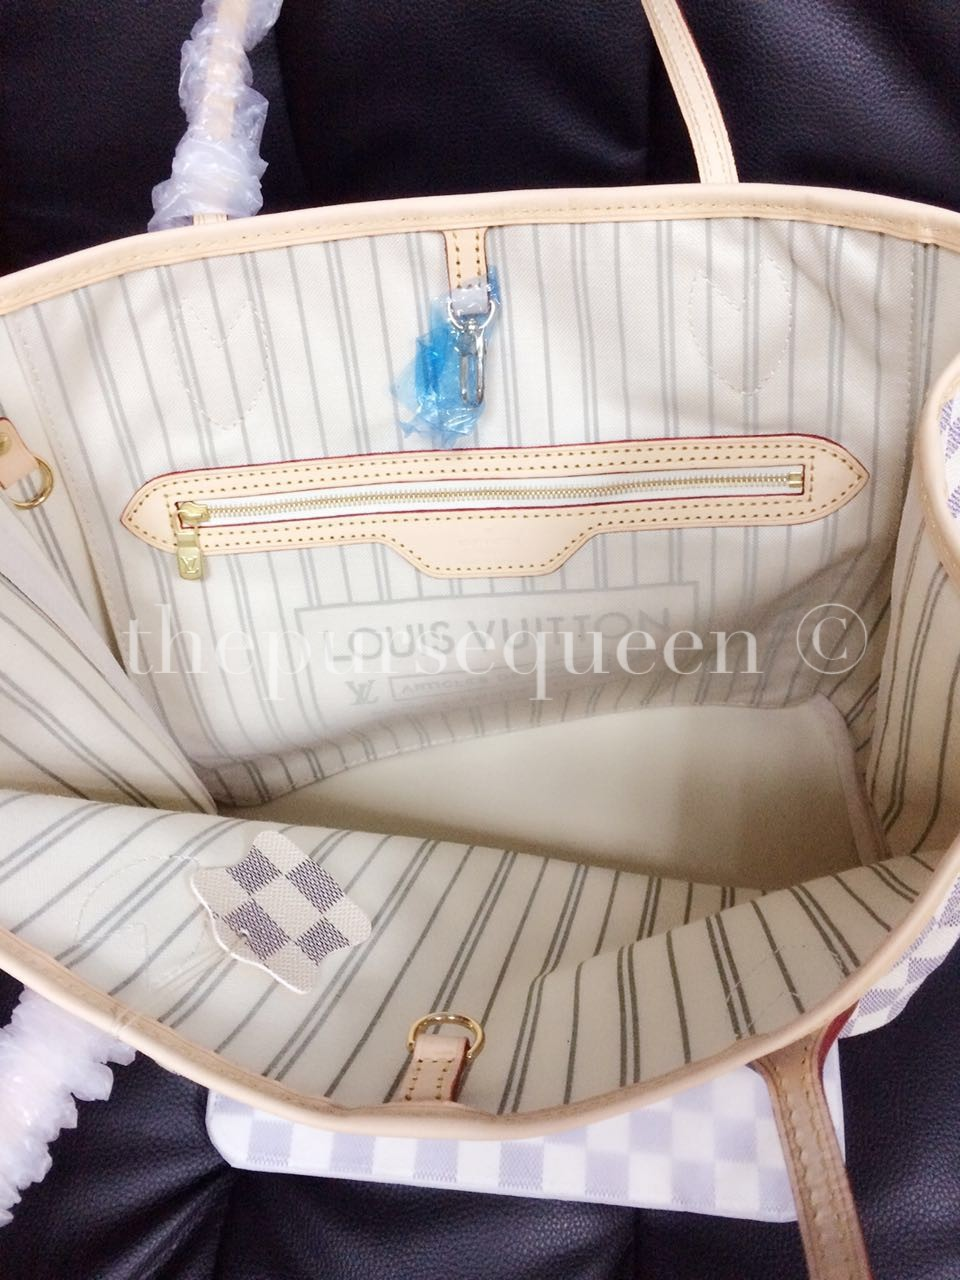 b77d55bbdd82 Louis Vuitton Neverfull Replica - Damier Azur - Authentic   Replica ...